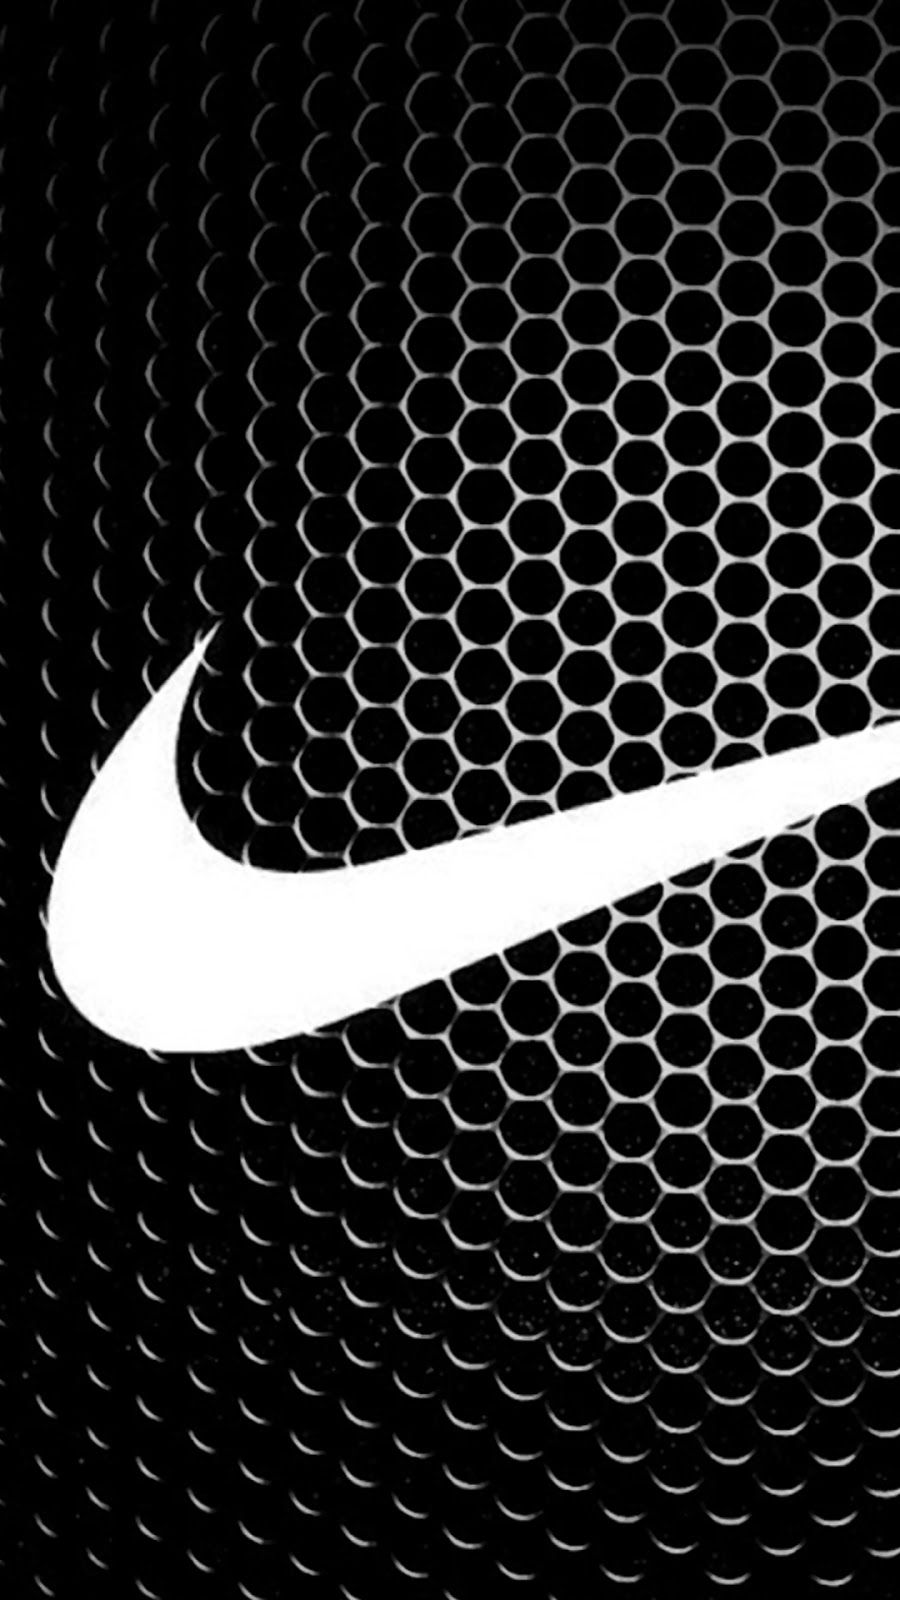 Nike Logo Hd Wallpapers For Iphone X Iphone Xr Iphone 11 Etc Andriblog001 Hd Wallpaper Iphone Iphone Wallpaper Black Wallpaper Iphone